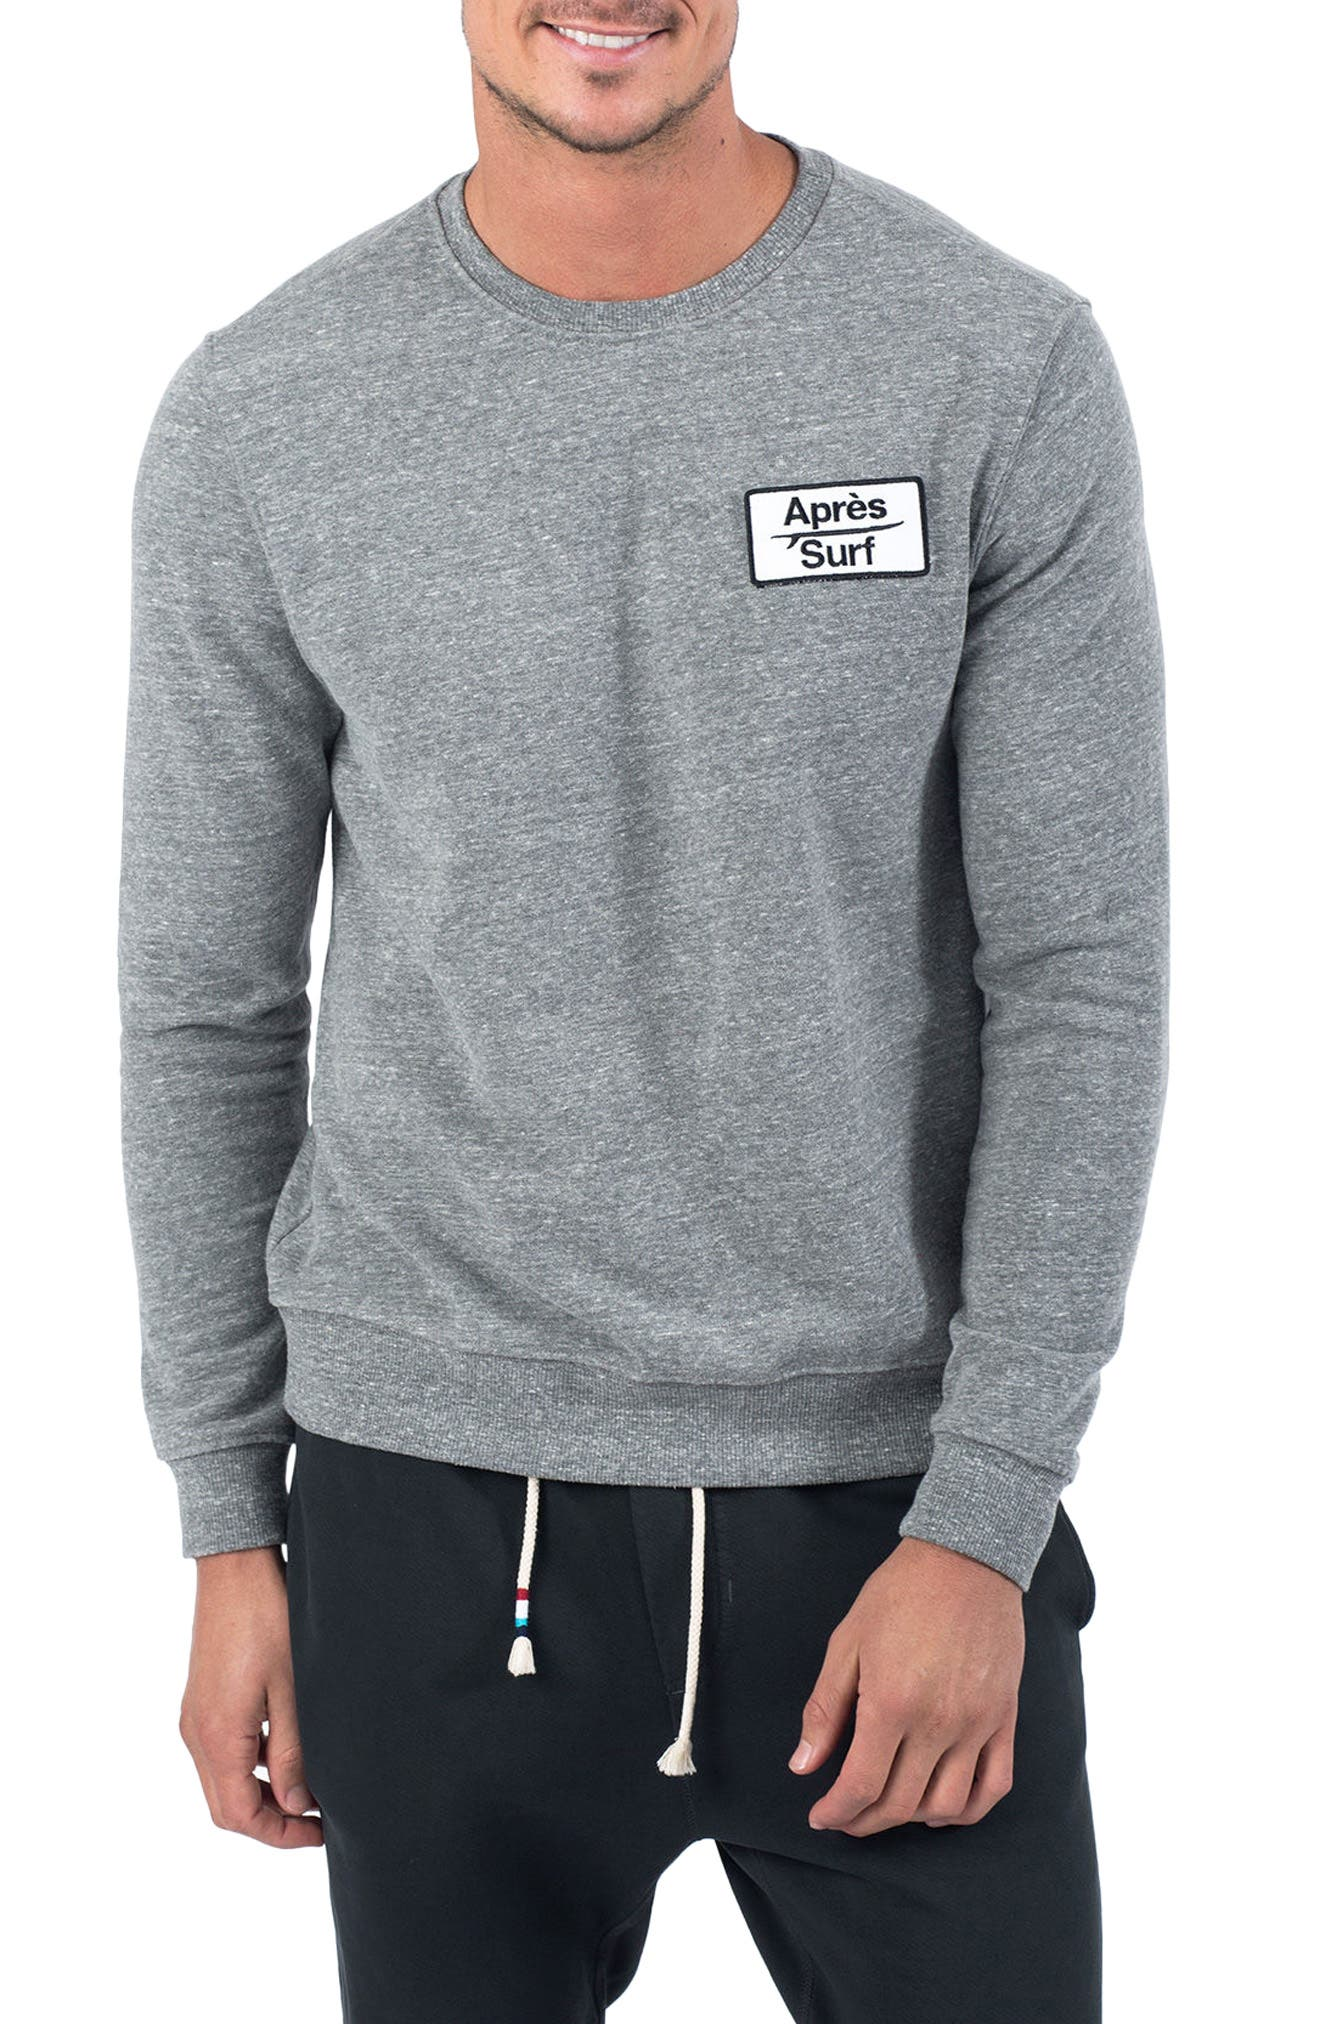 Aprés Surf Sweatshirt,                             Main thumbnail 1, color,                             Heather Grey